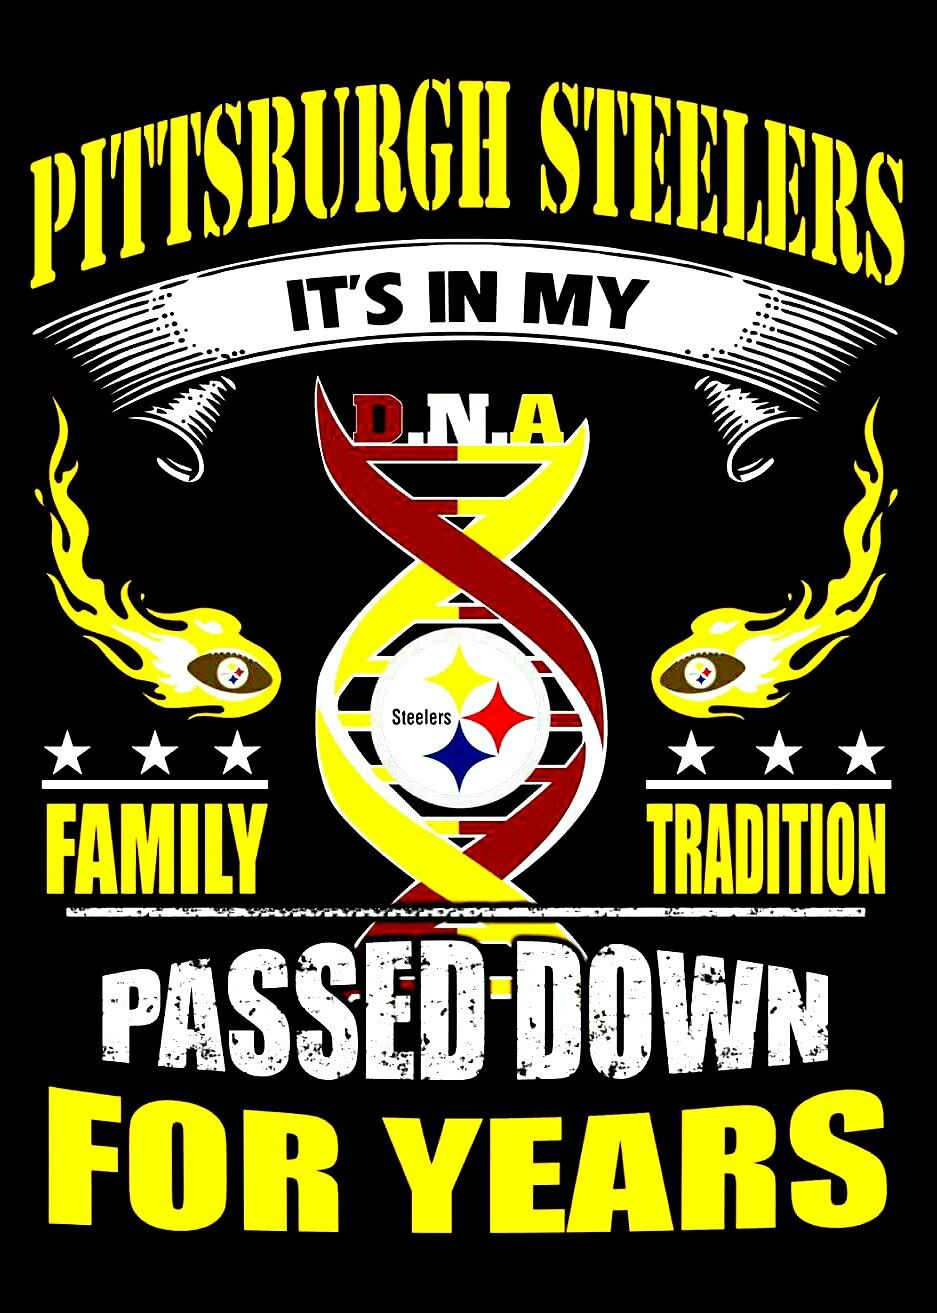 Passed Down for years Steelers, Pittsburgh steelers logo